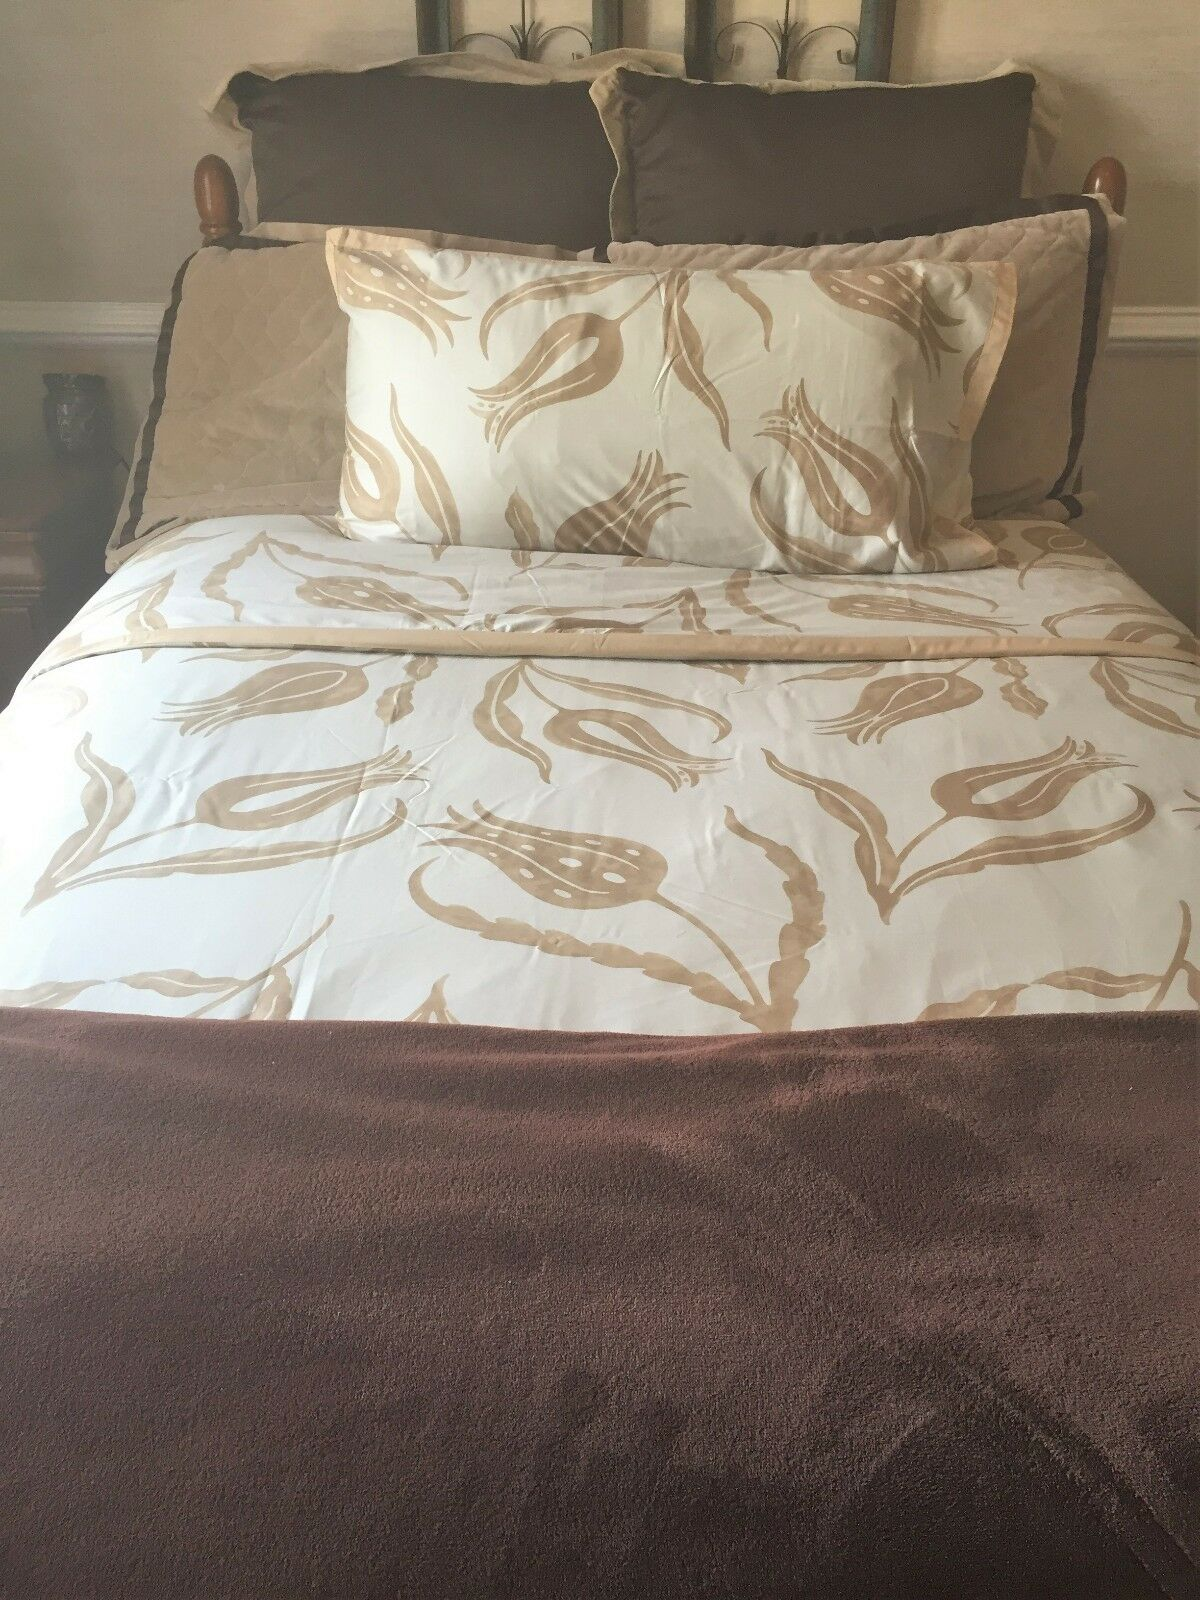 Williams-Sonoma Floral 1 KING CAL. KING Duvet Cover with 2 Shams (Stand or Euro)